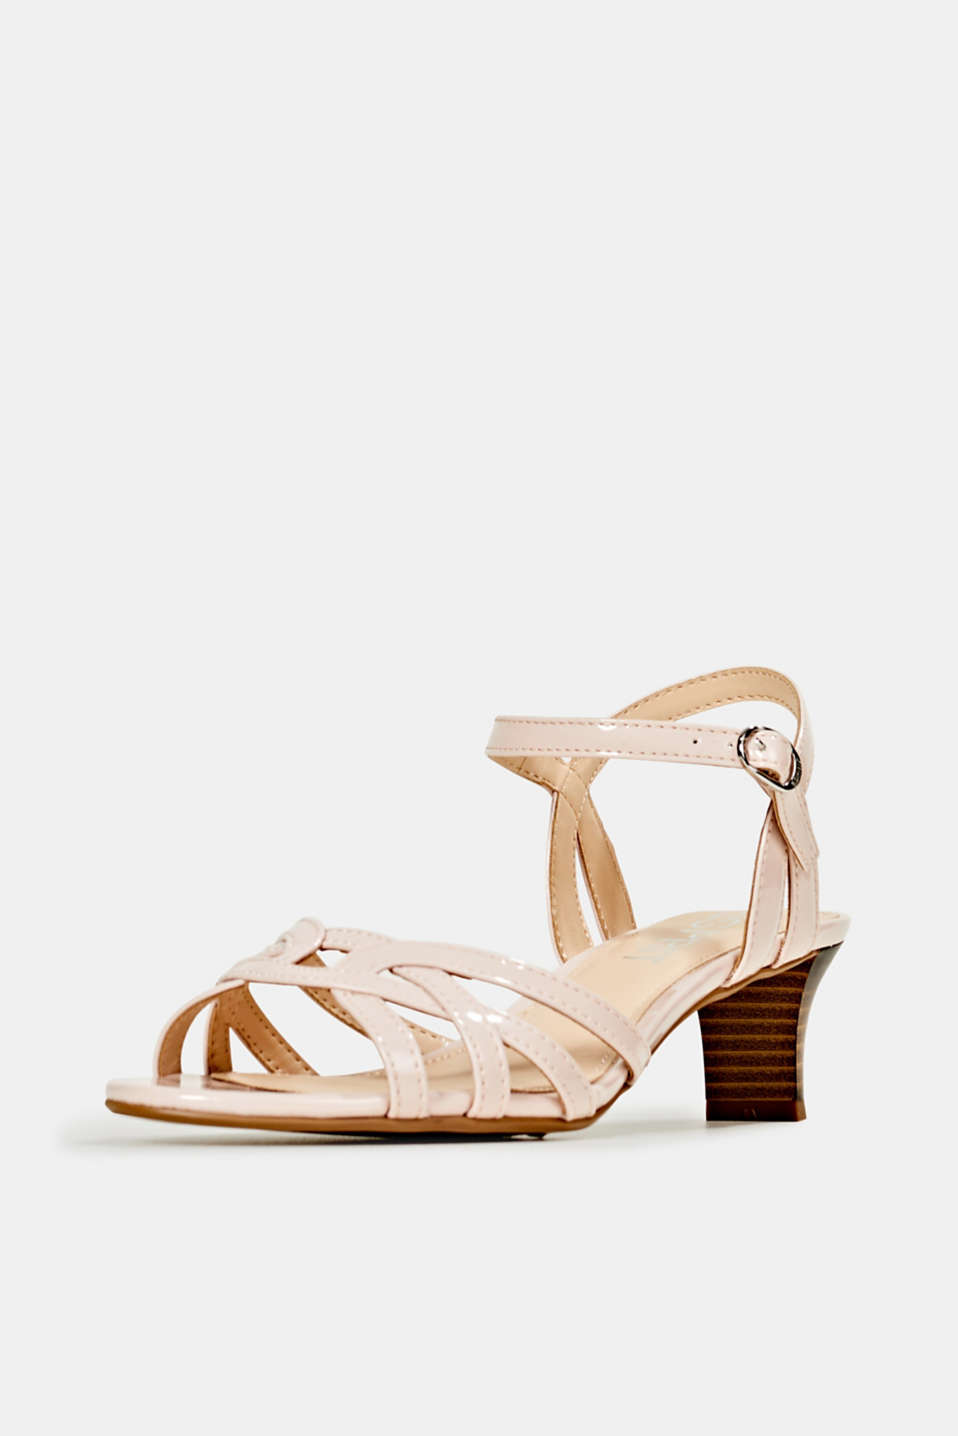 Sandals with straps in a braided look, NUDE, detail image number 2